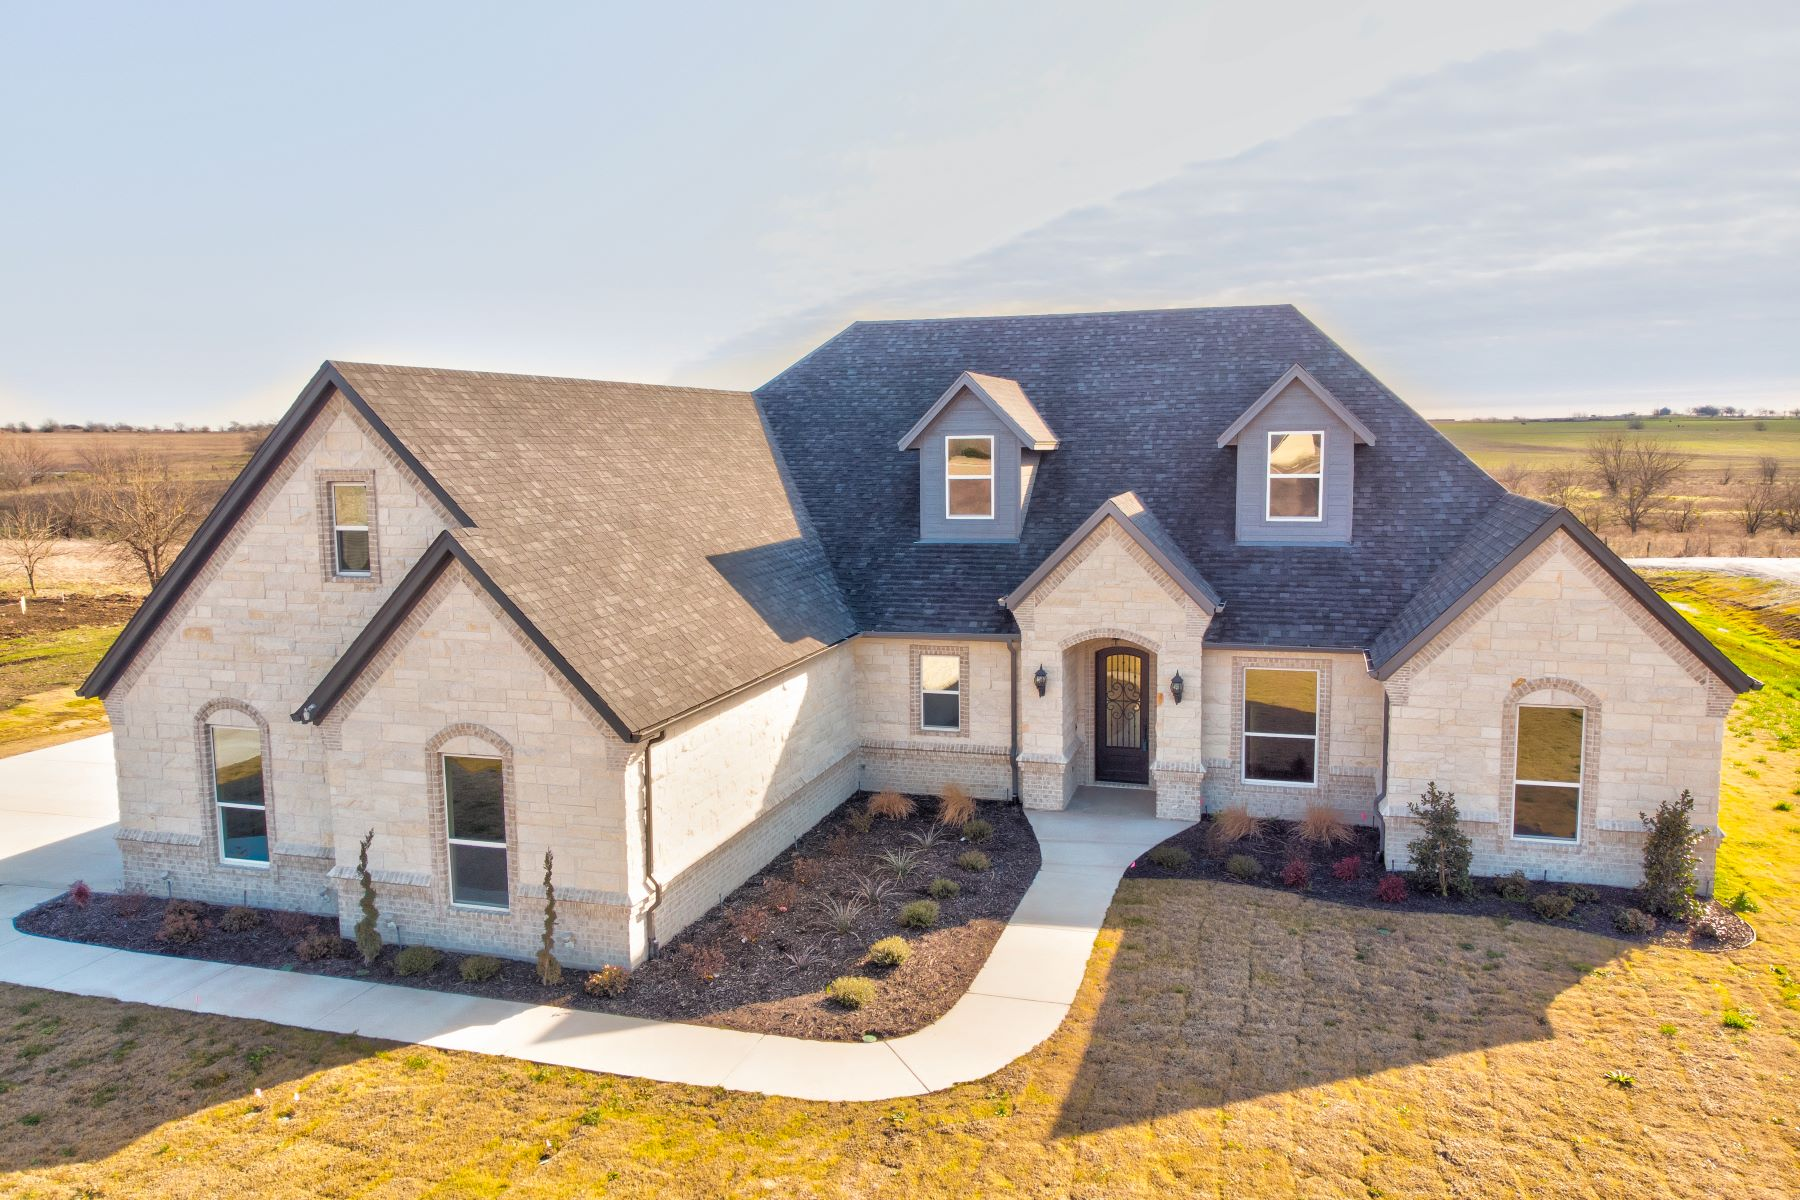 Single Family Homes for Sale at Luxurious new construction on over an acre in highly sought after Godley ISD 6300 Nobu Place Godley, Texas 76044 United States